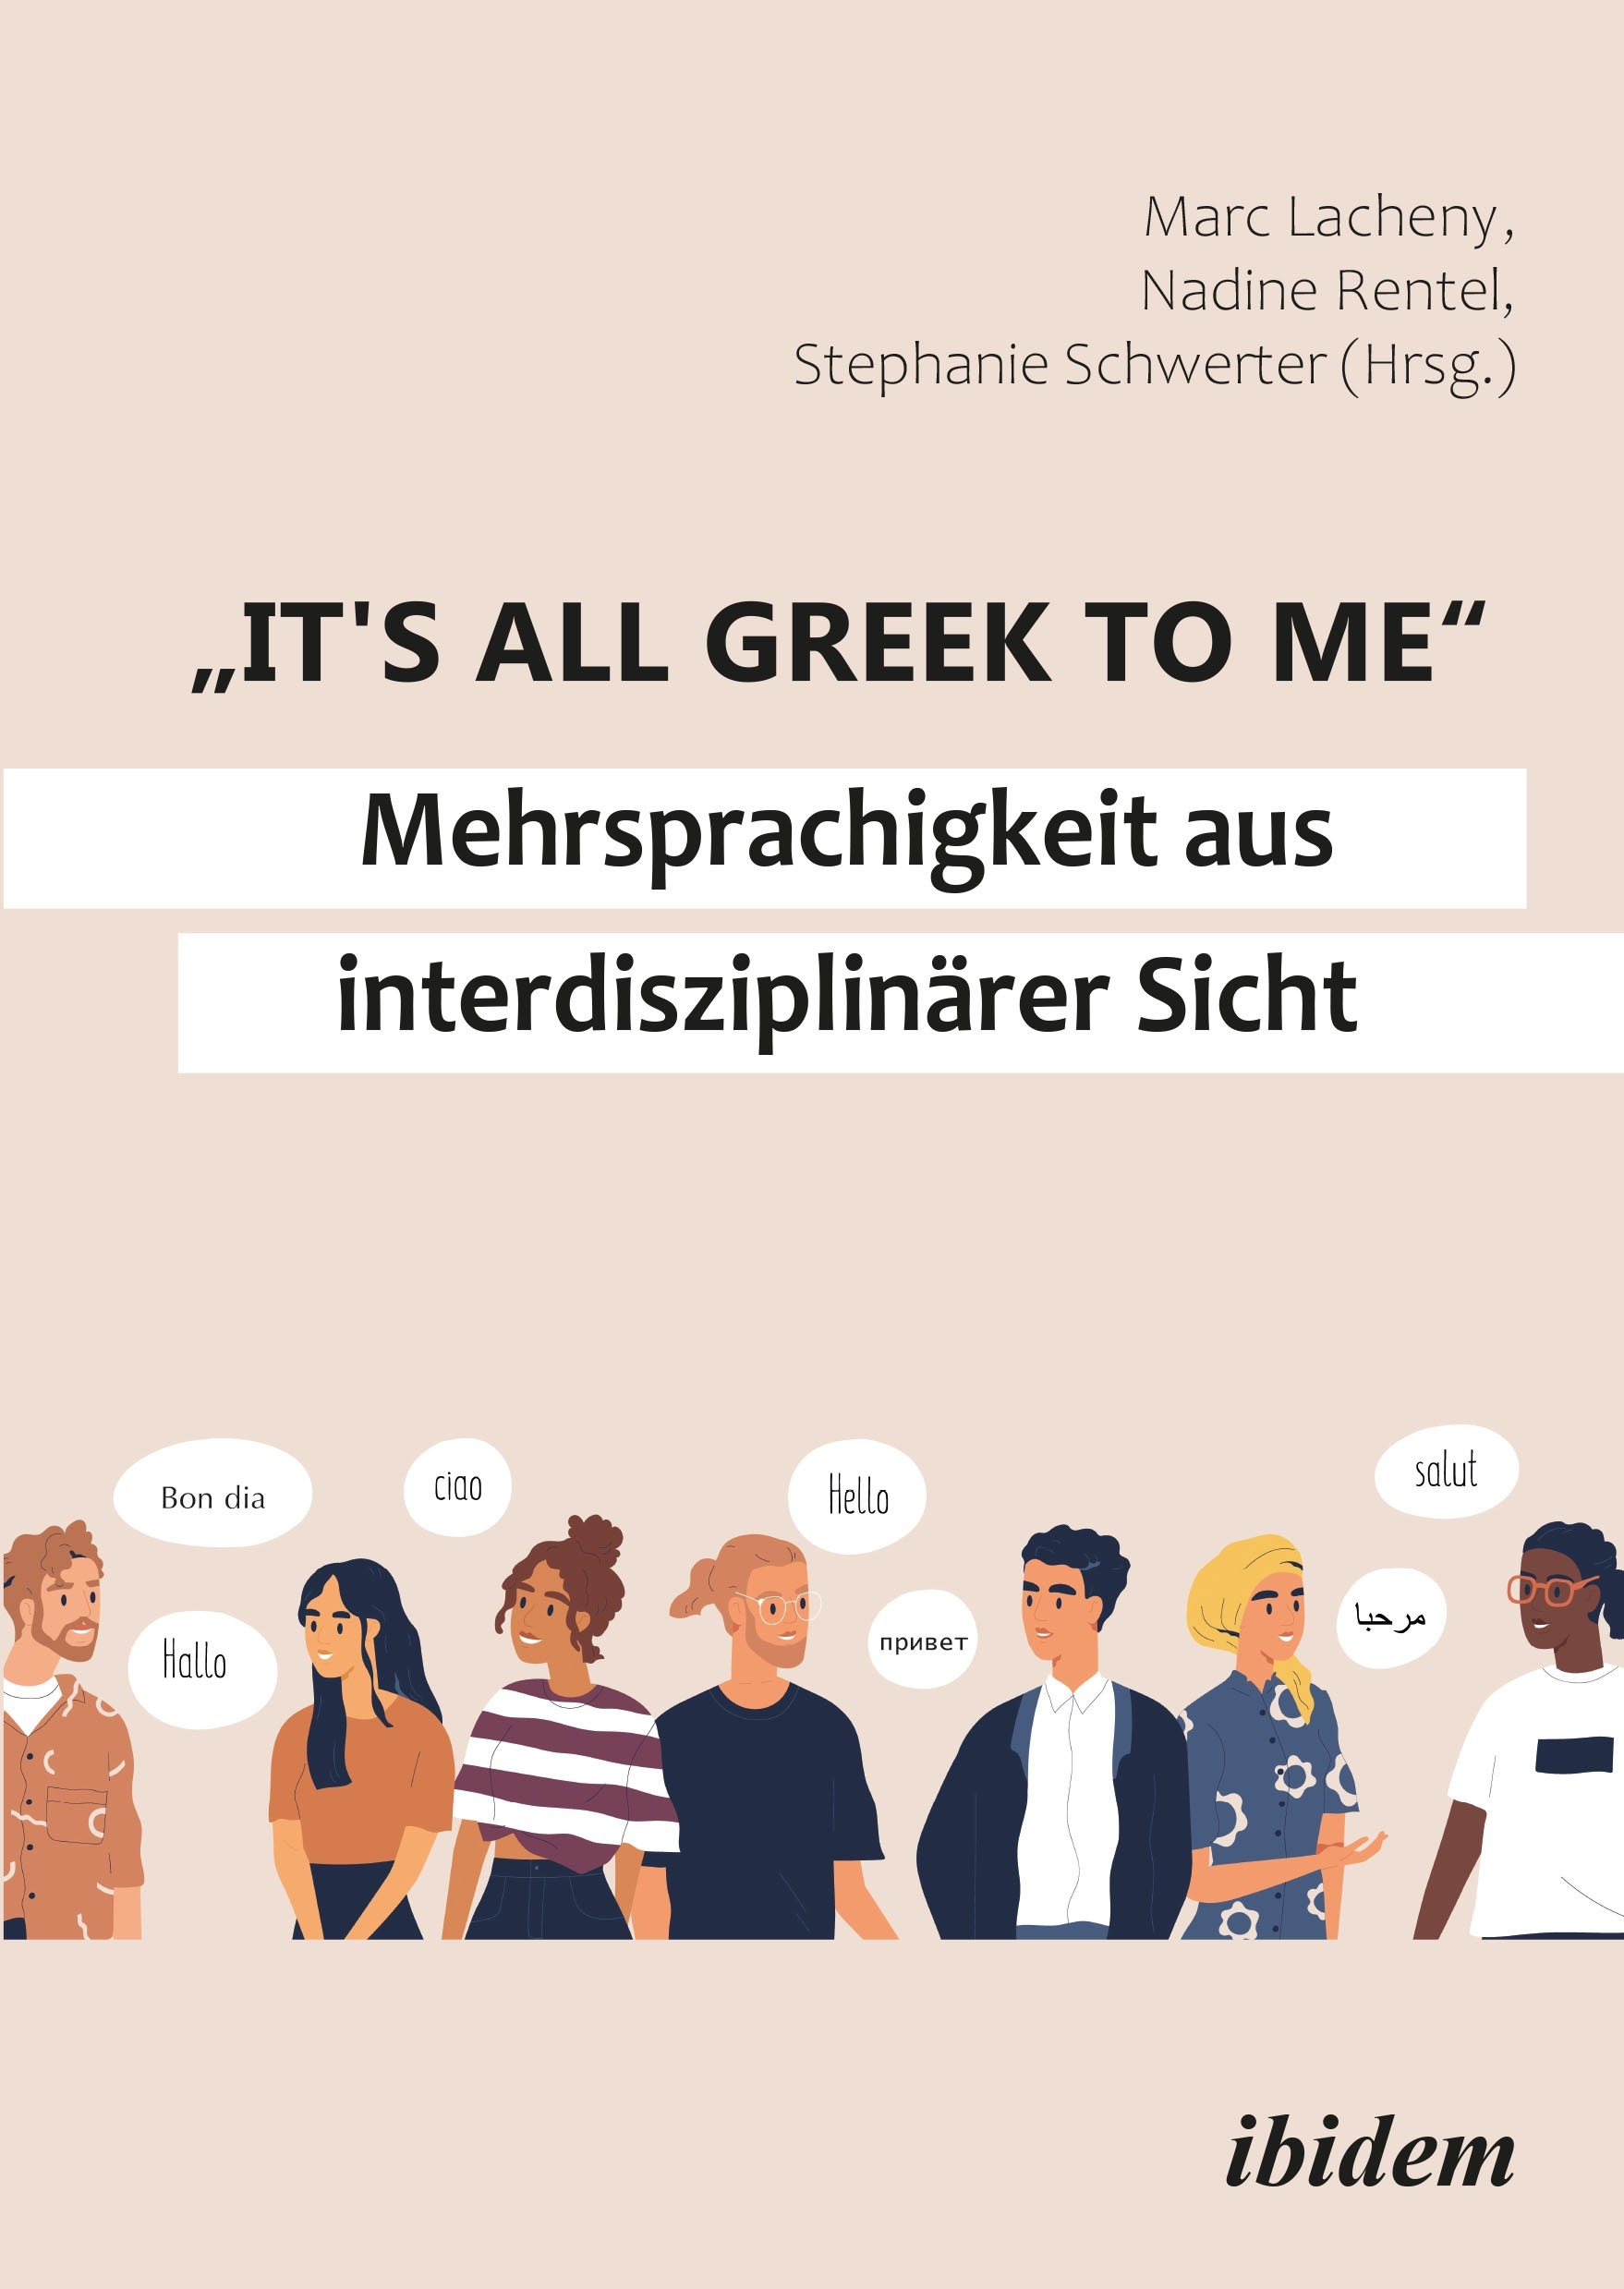 """It's all Greek to me"": Mehrsprachigkeit aus interdisziplinärer Sicht"